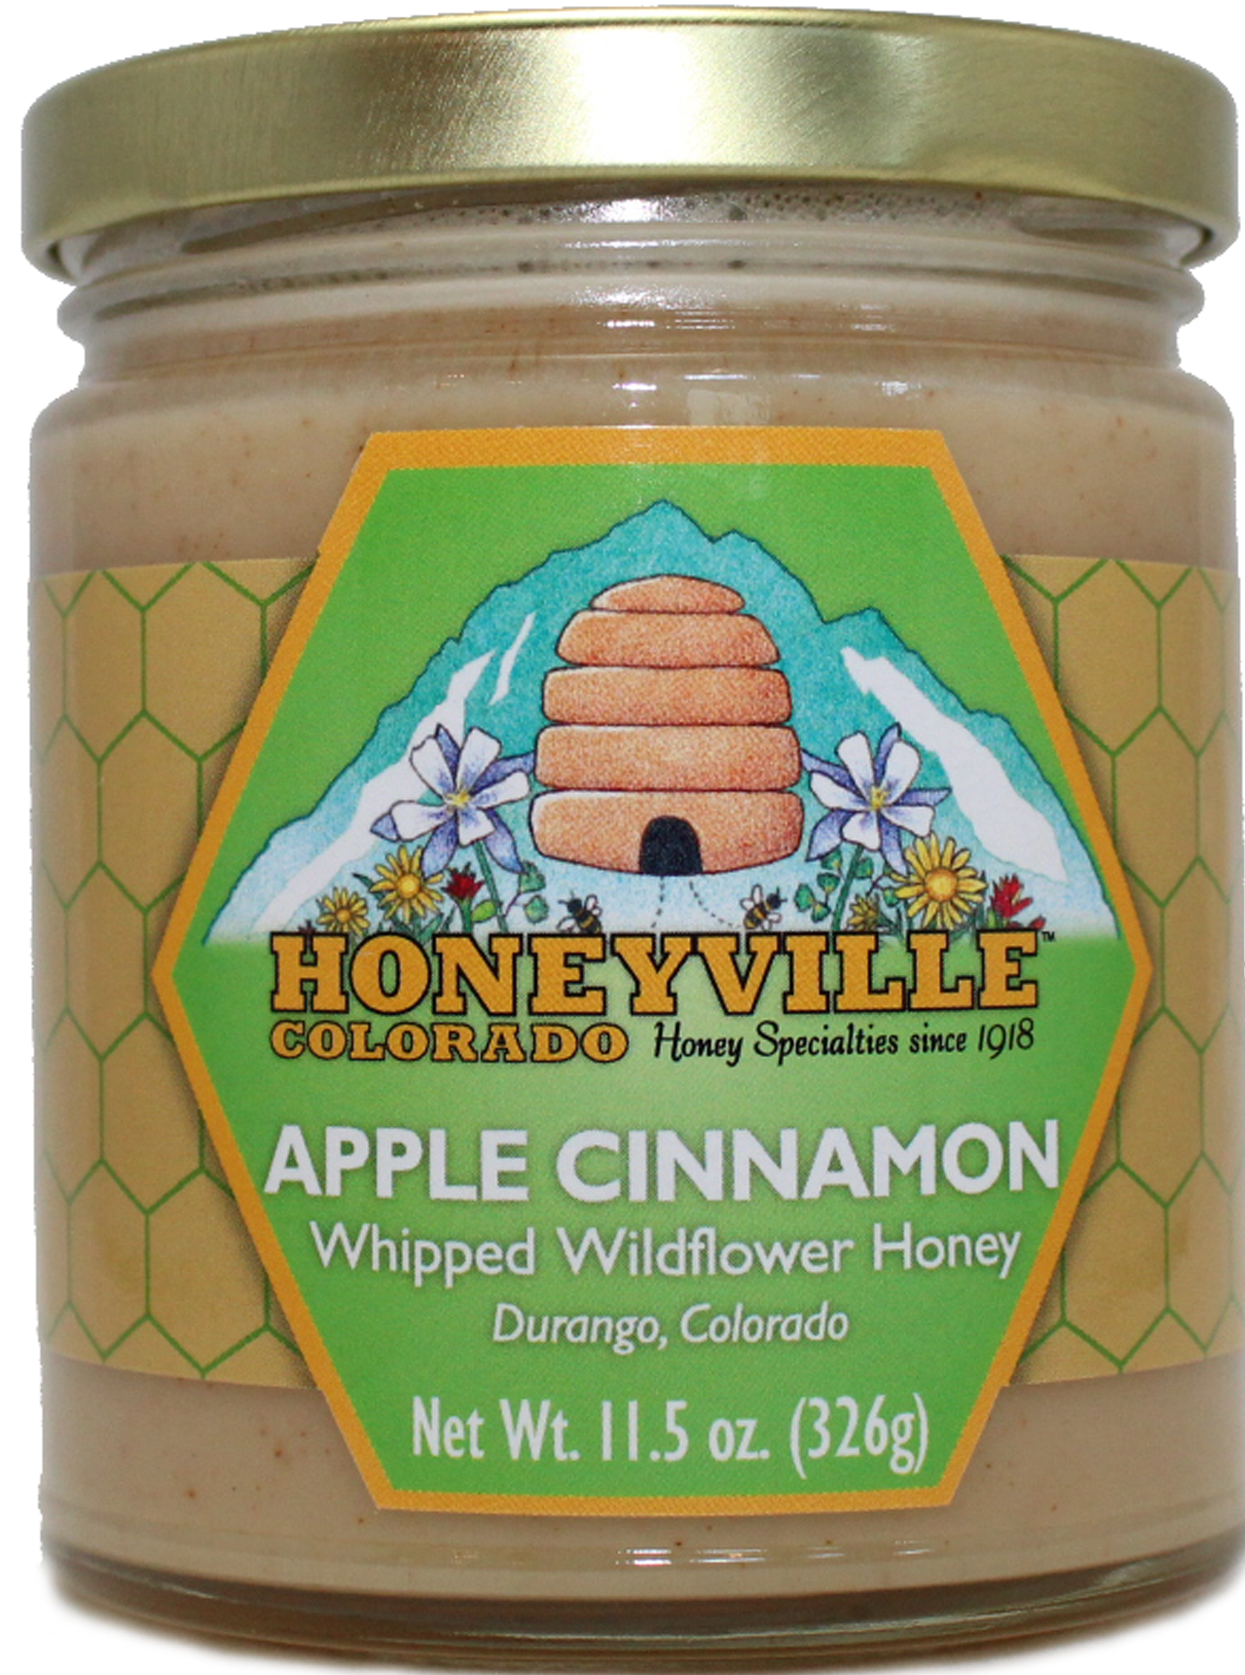 APPLE CINNAMON WHIPPED HONEY